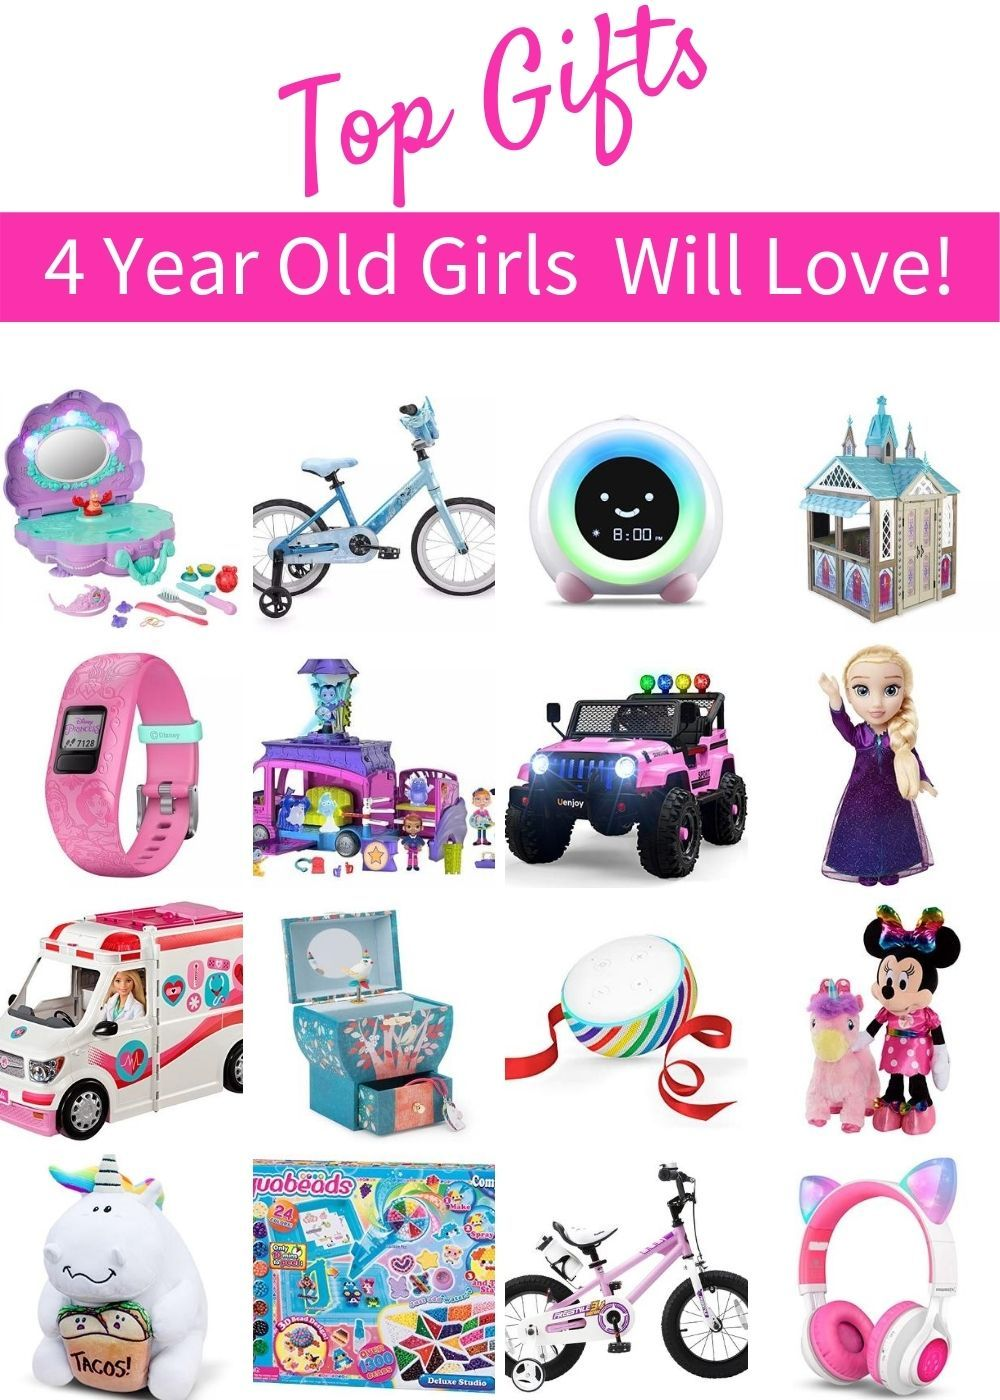 Top Kid Gifts For Christmas 2021 Best Toys And Gifts For 4 Year Old Girls 2021 4 Year Old Toys 4 Year Old Christmas Gifts Little Girl Gifts